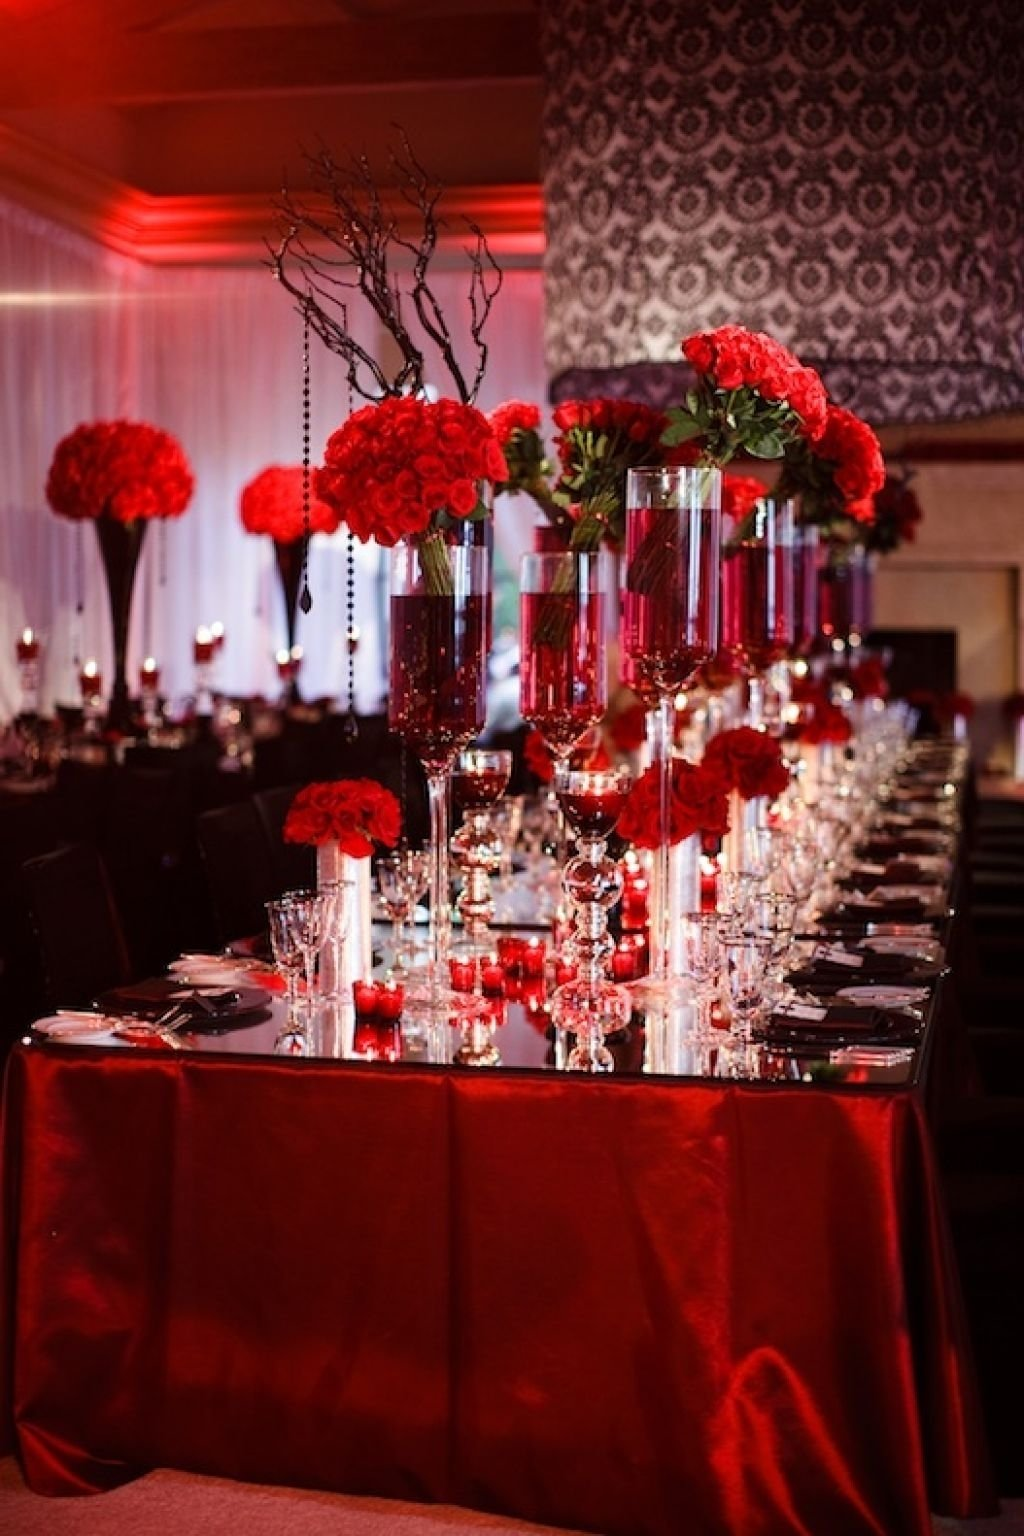 10 Ideal Black Red And White Wedding Ideas red and black wedding theme red and black wedding theme red white